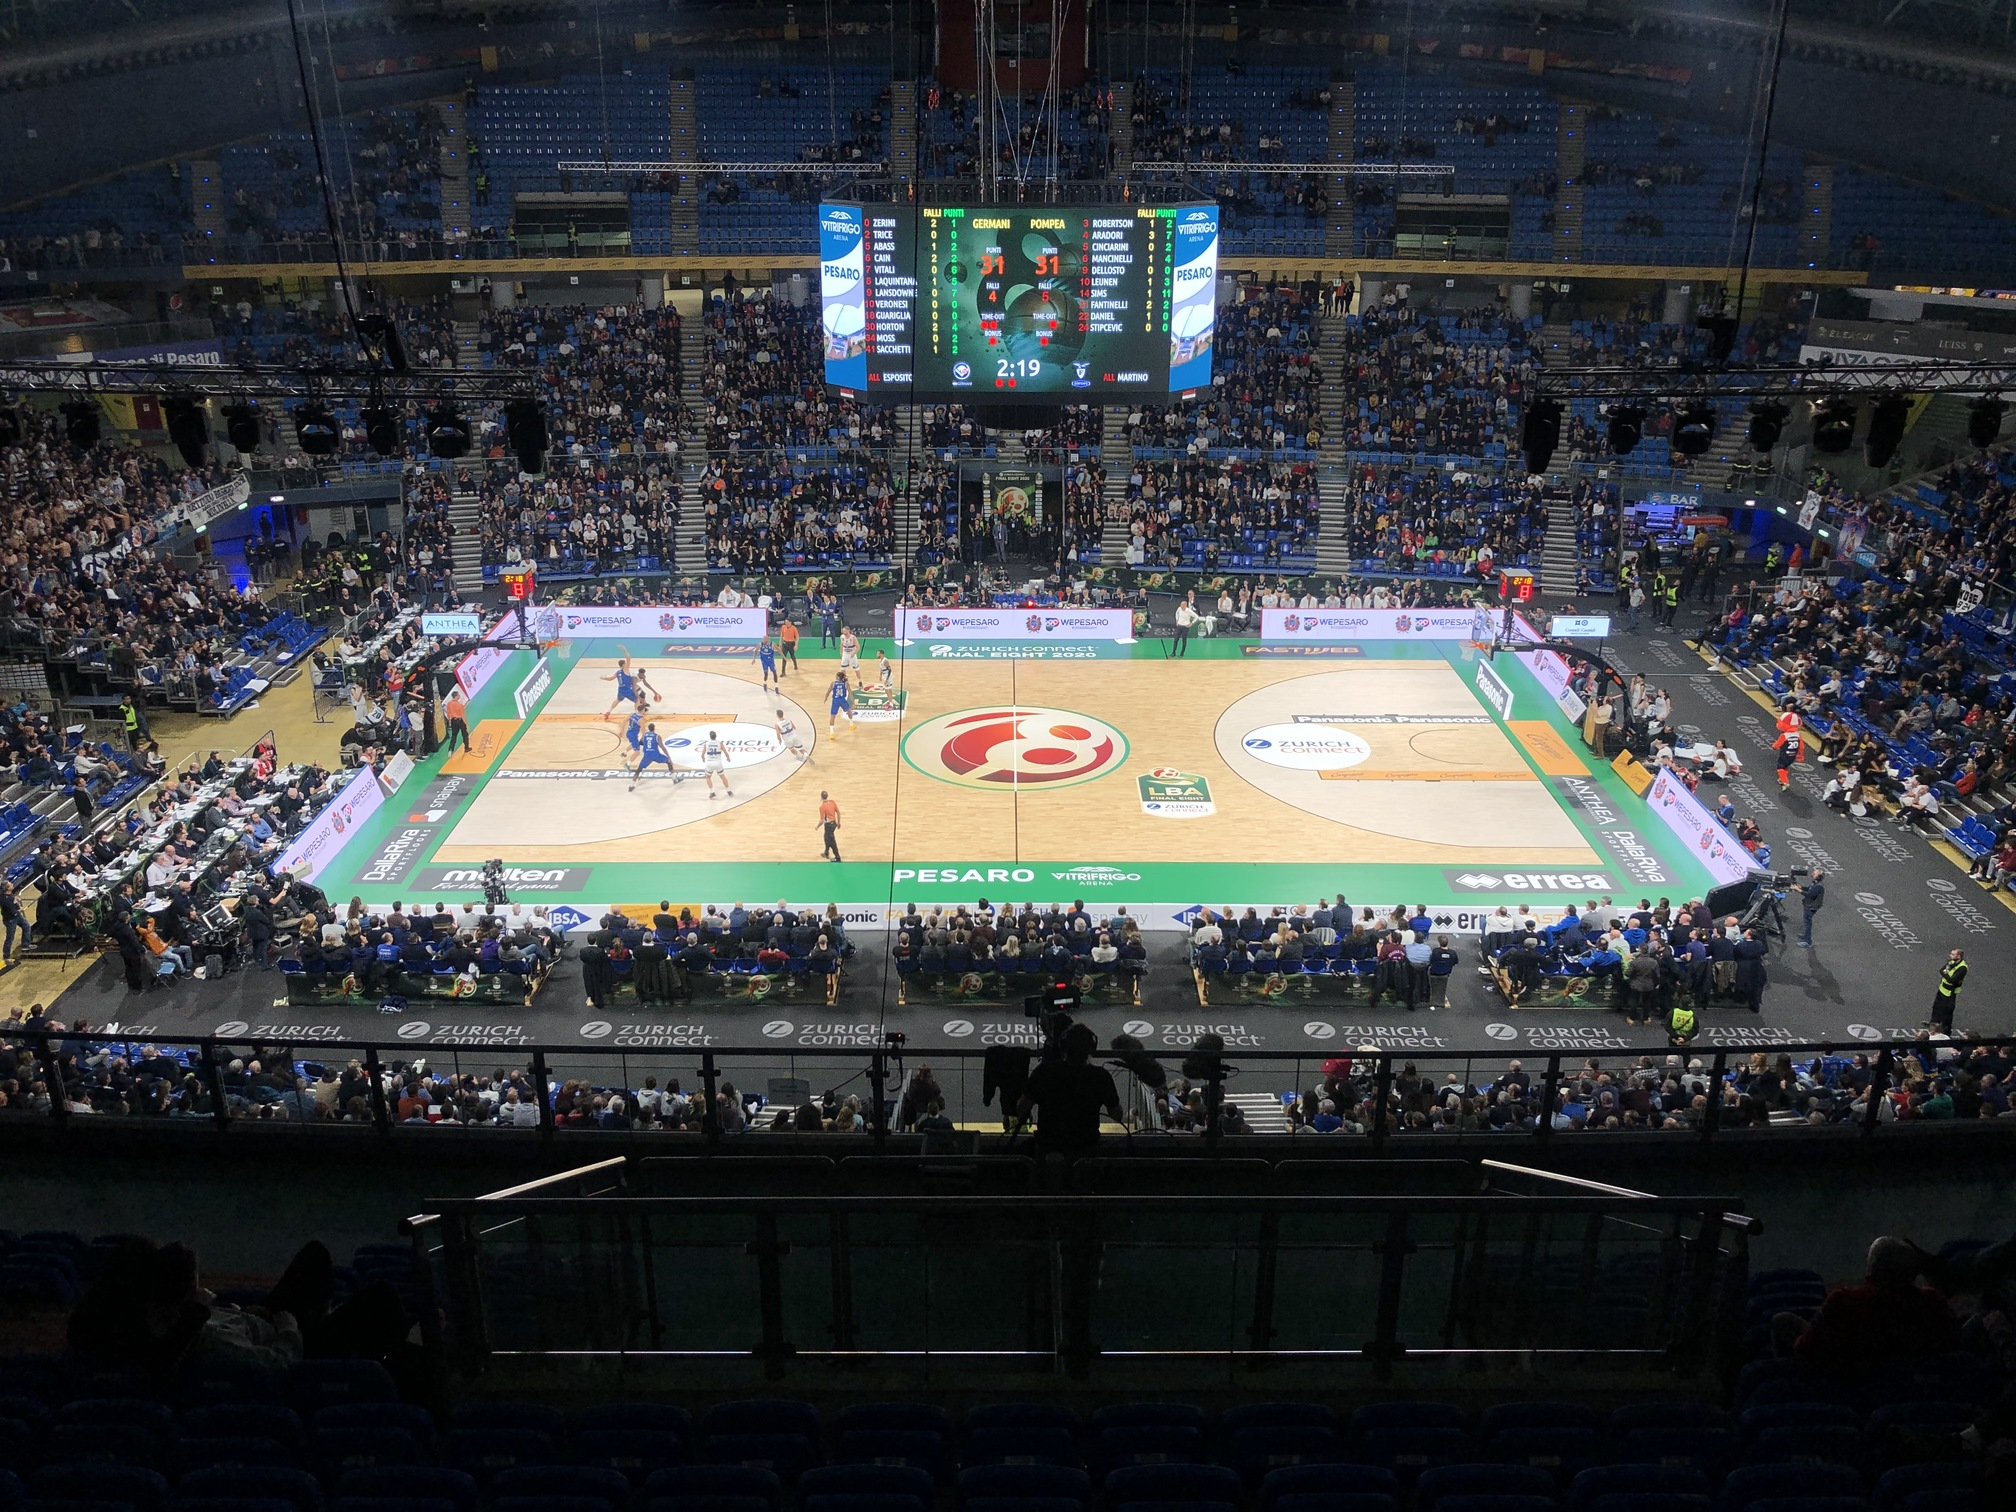 Quarterfinals between Brescia and Fortitudo Bologna